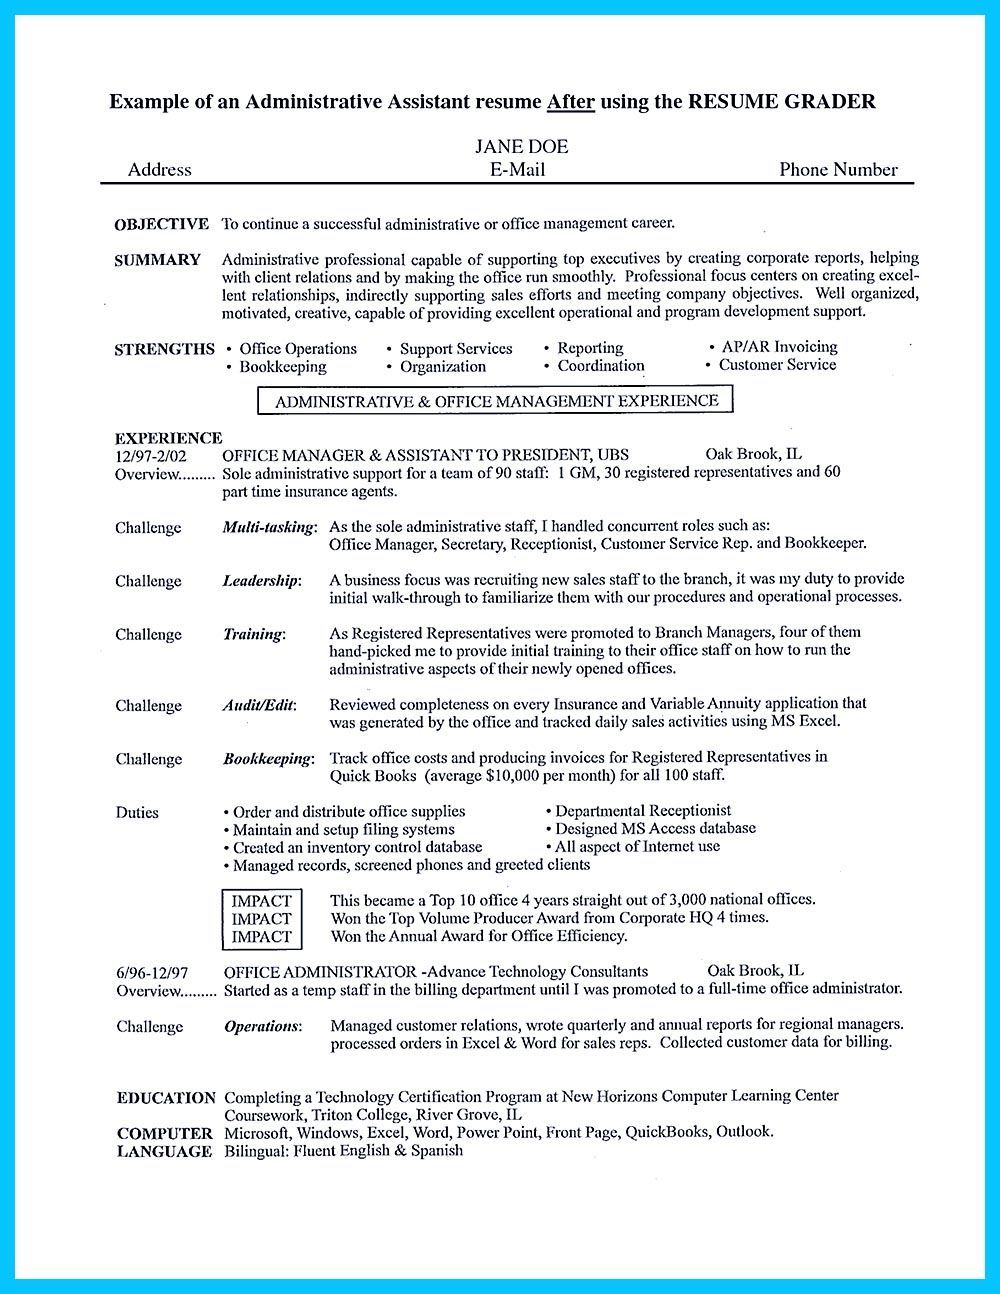 Entry Level Administrative Assistant Resume Simple In Writing Entry Level Administrative Assistant Resume You Need To .